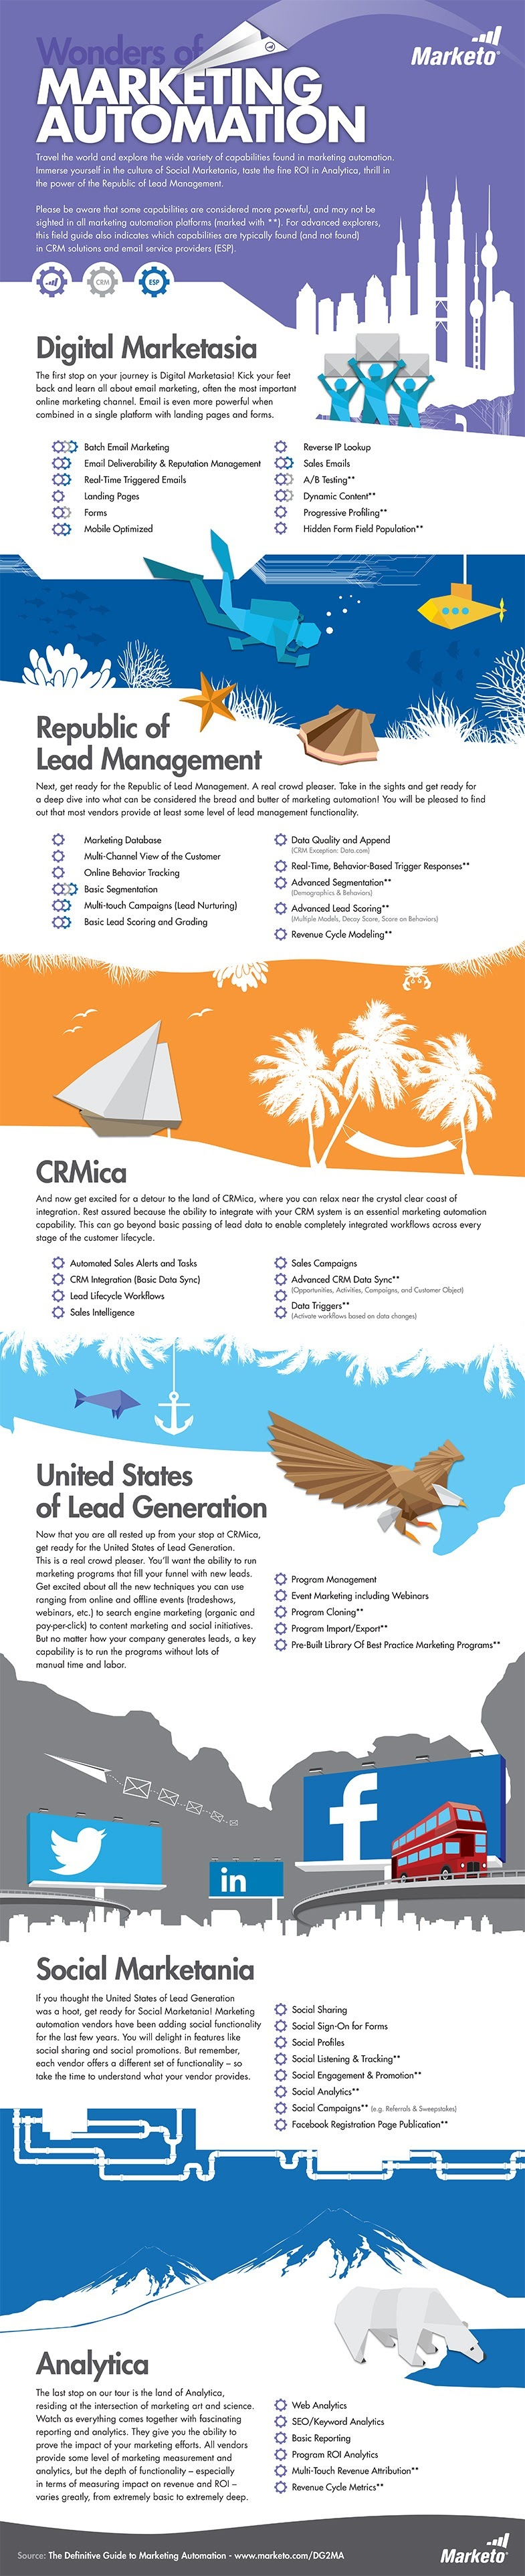 World Of Marketing Automation #Infographic